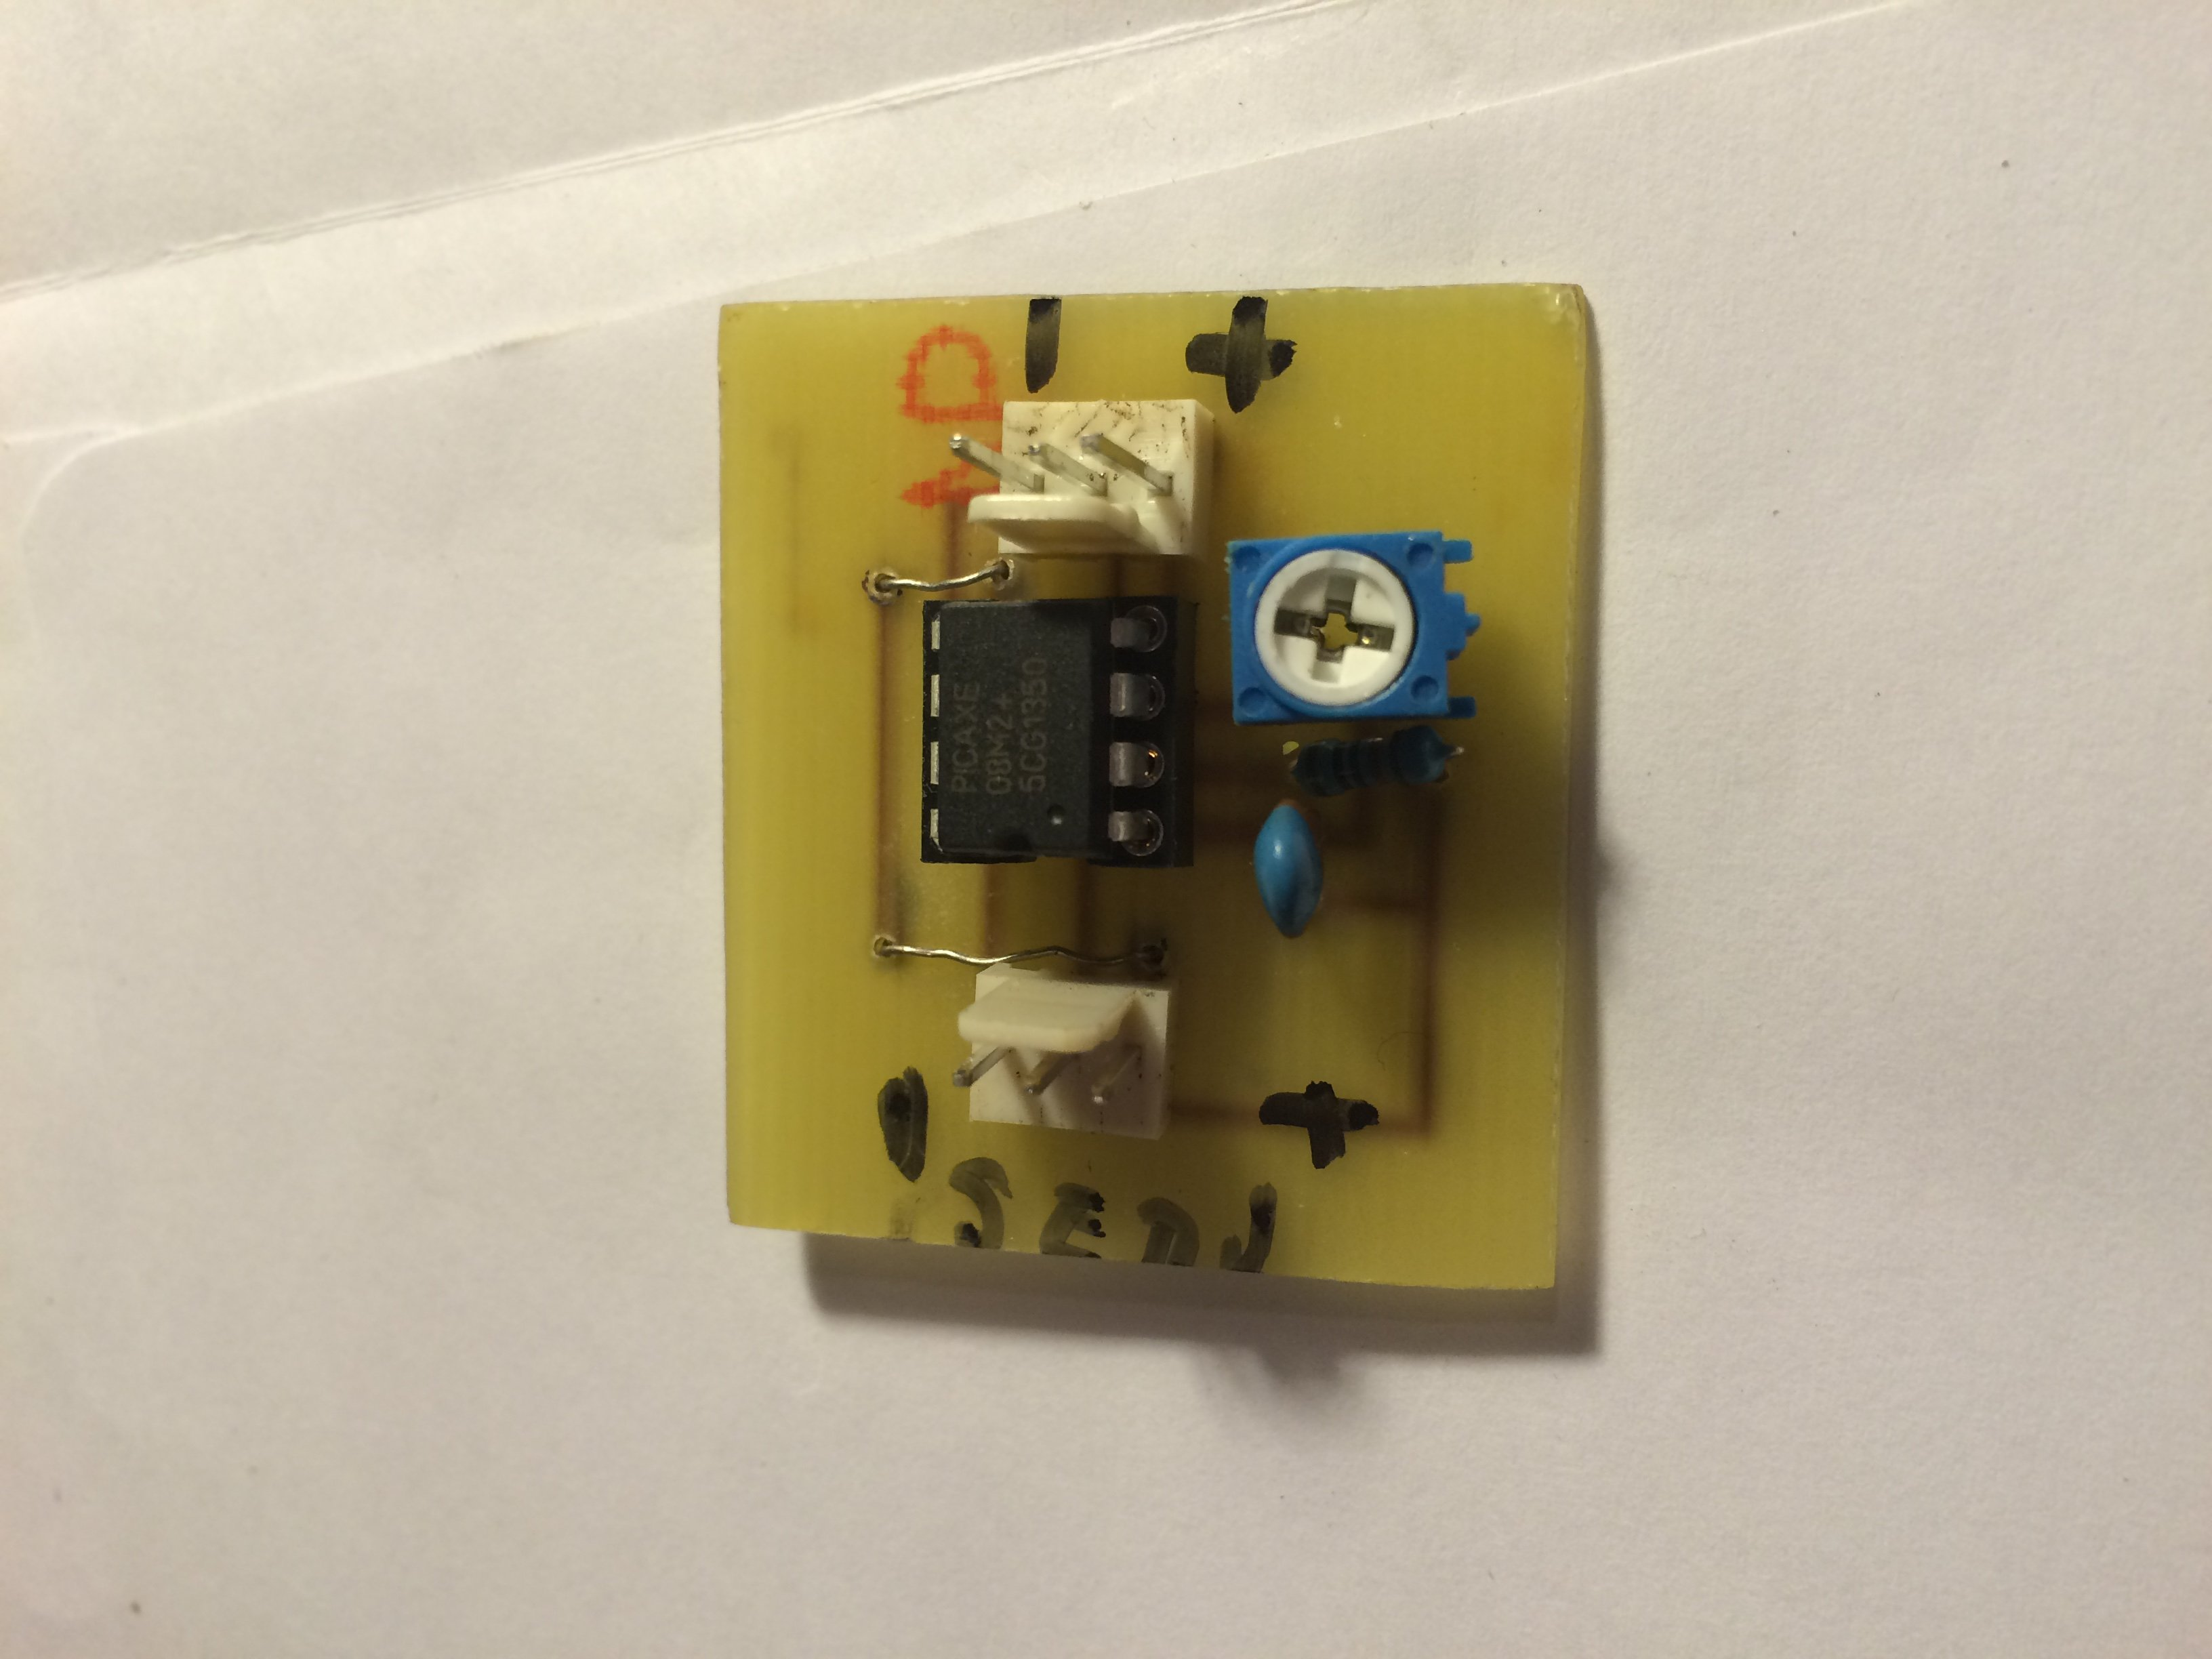 Diy Navigation Lights And Servo Speed Control Flite Test Here Is The Circuit Schematic For Demonstration Board A Picture Of Completed It Weighs 9 Grams